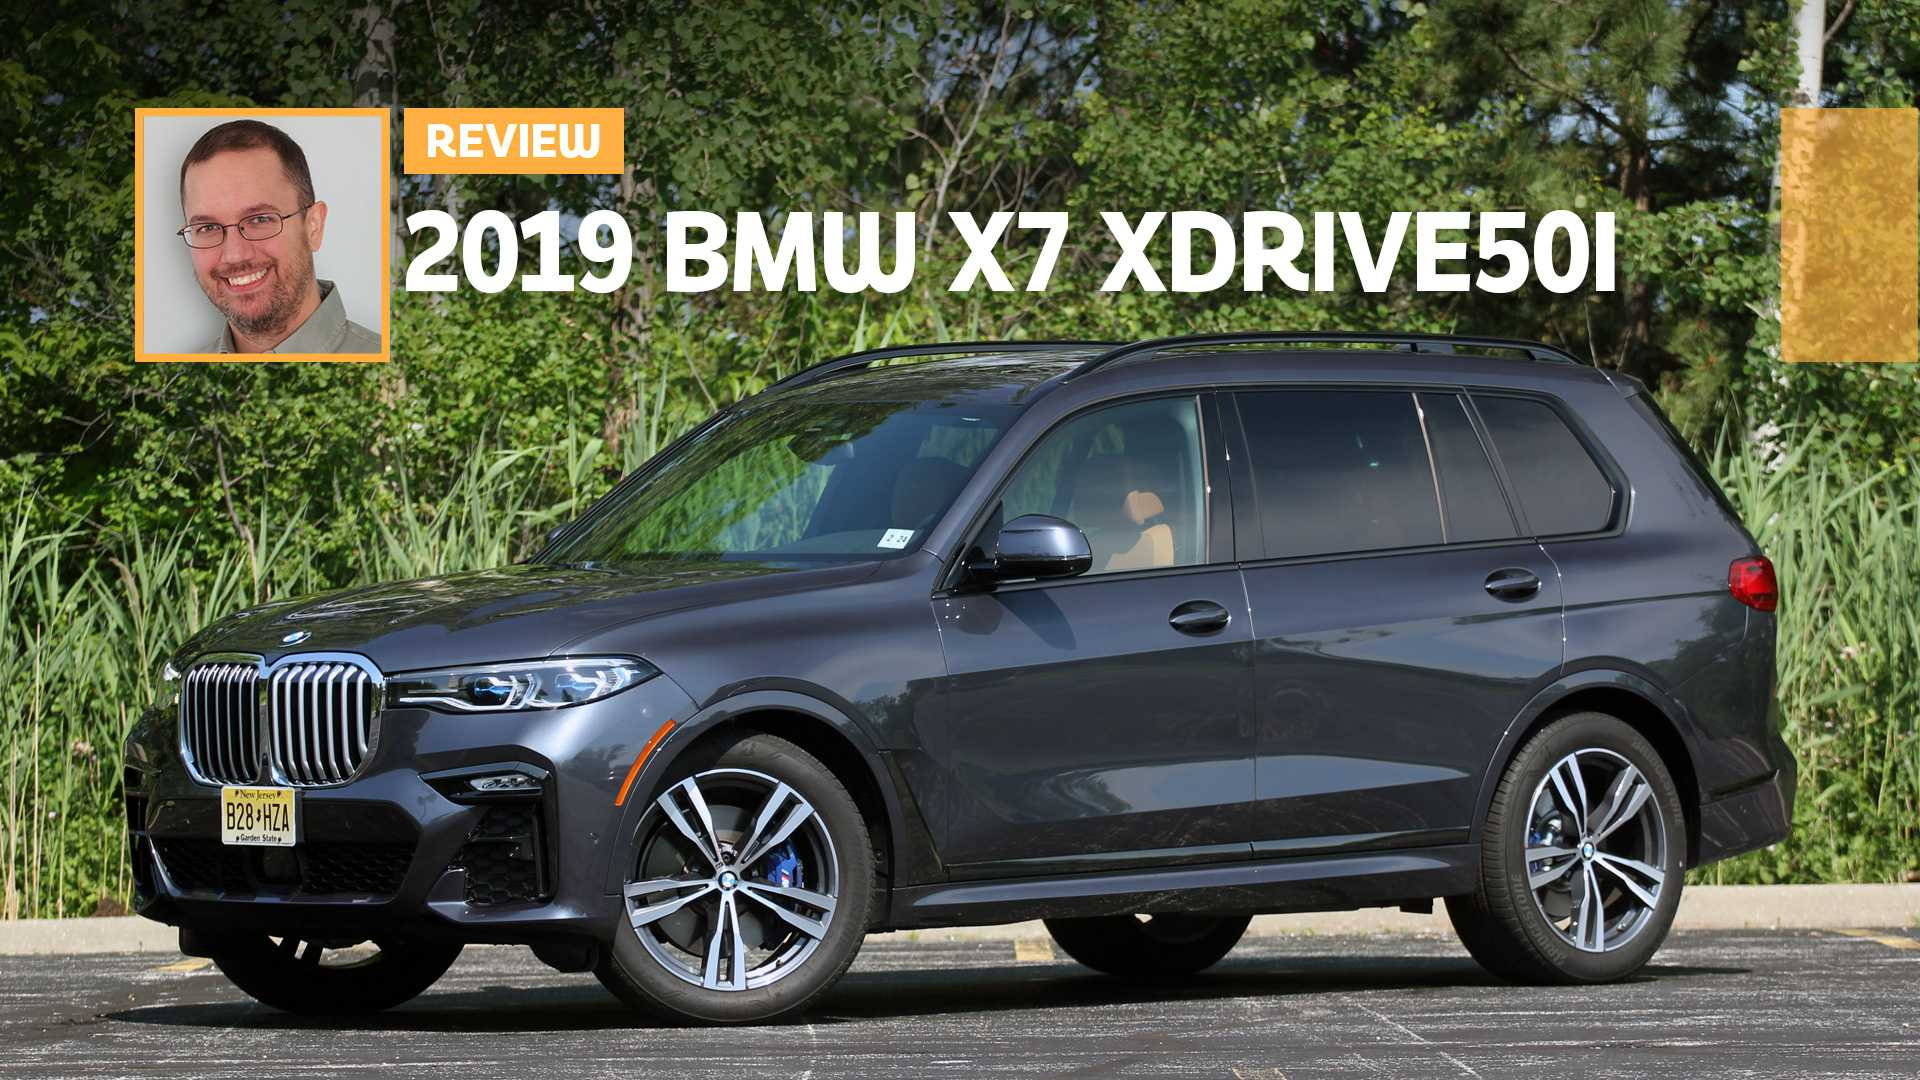 2019 BMW X7 xDrive50i Review: Bigger, Better, Faster, Stronger